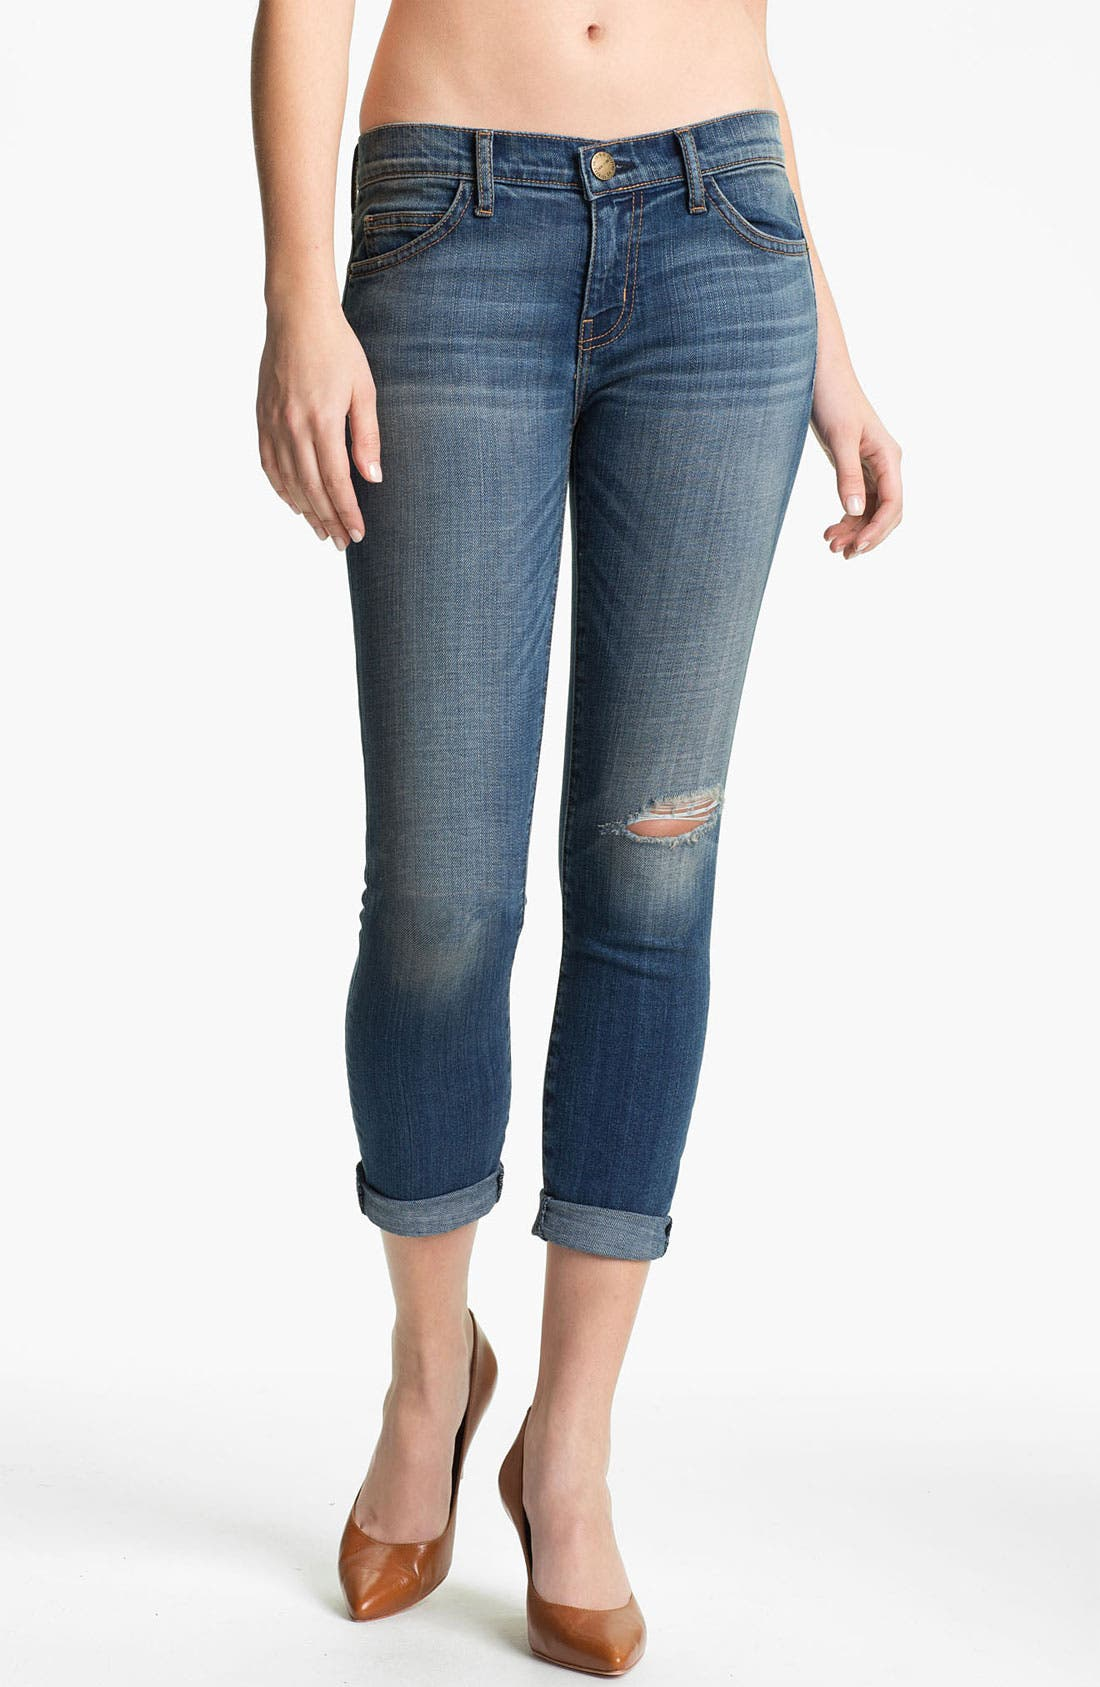 Main Image - Current/Elliott 'The Stiletto' Skinny Stretch Jeans (Juke Box/Destroy)